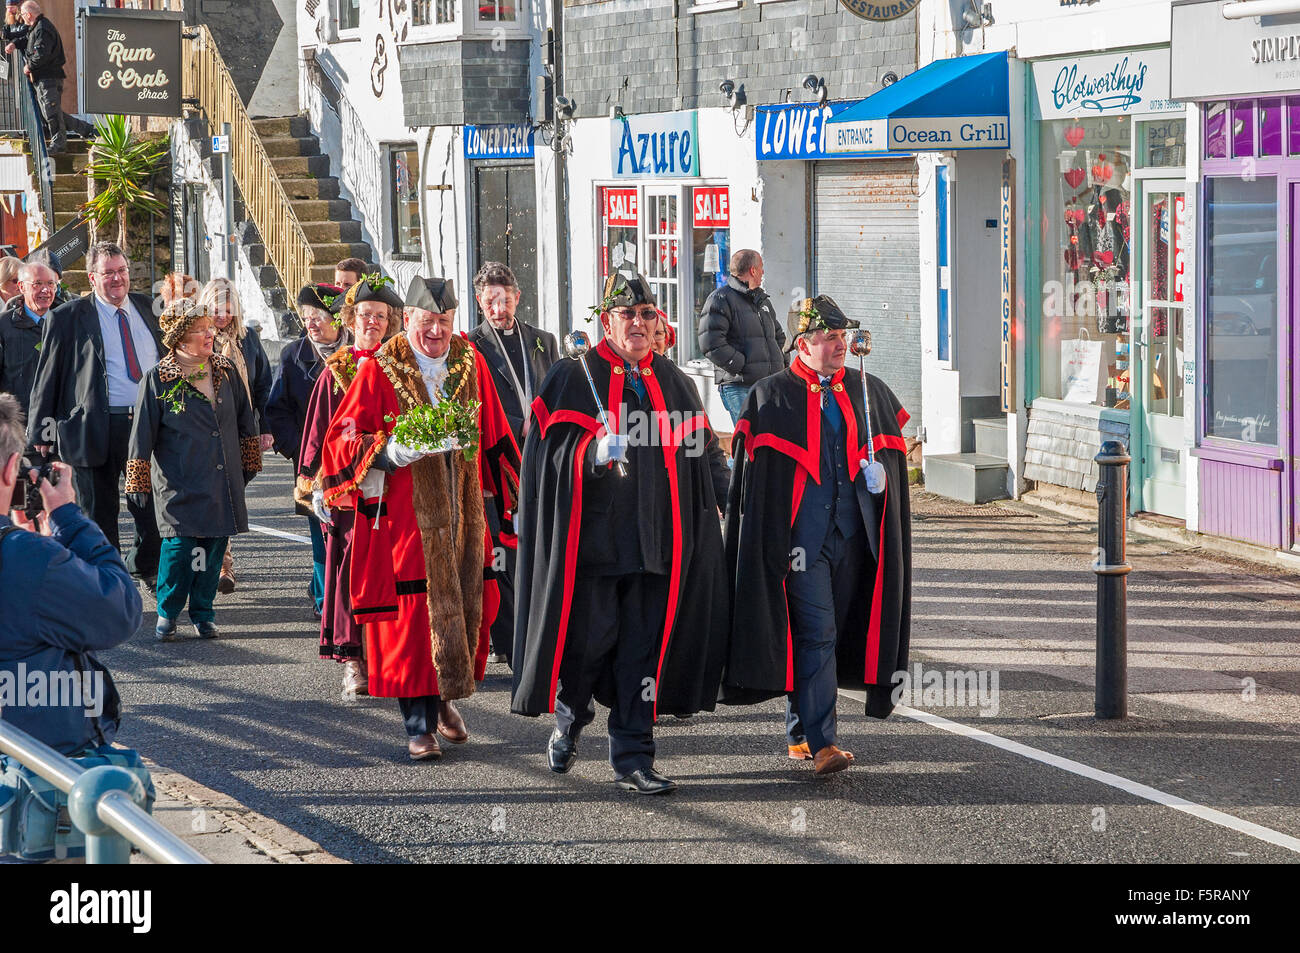 The Mayor and town council officials marching through the streets during the Annual Feast Day celebrations - Stock Image